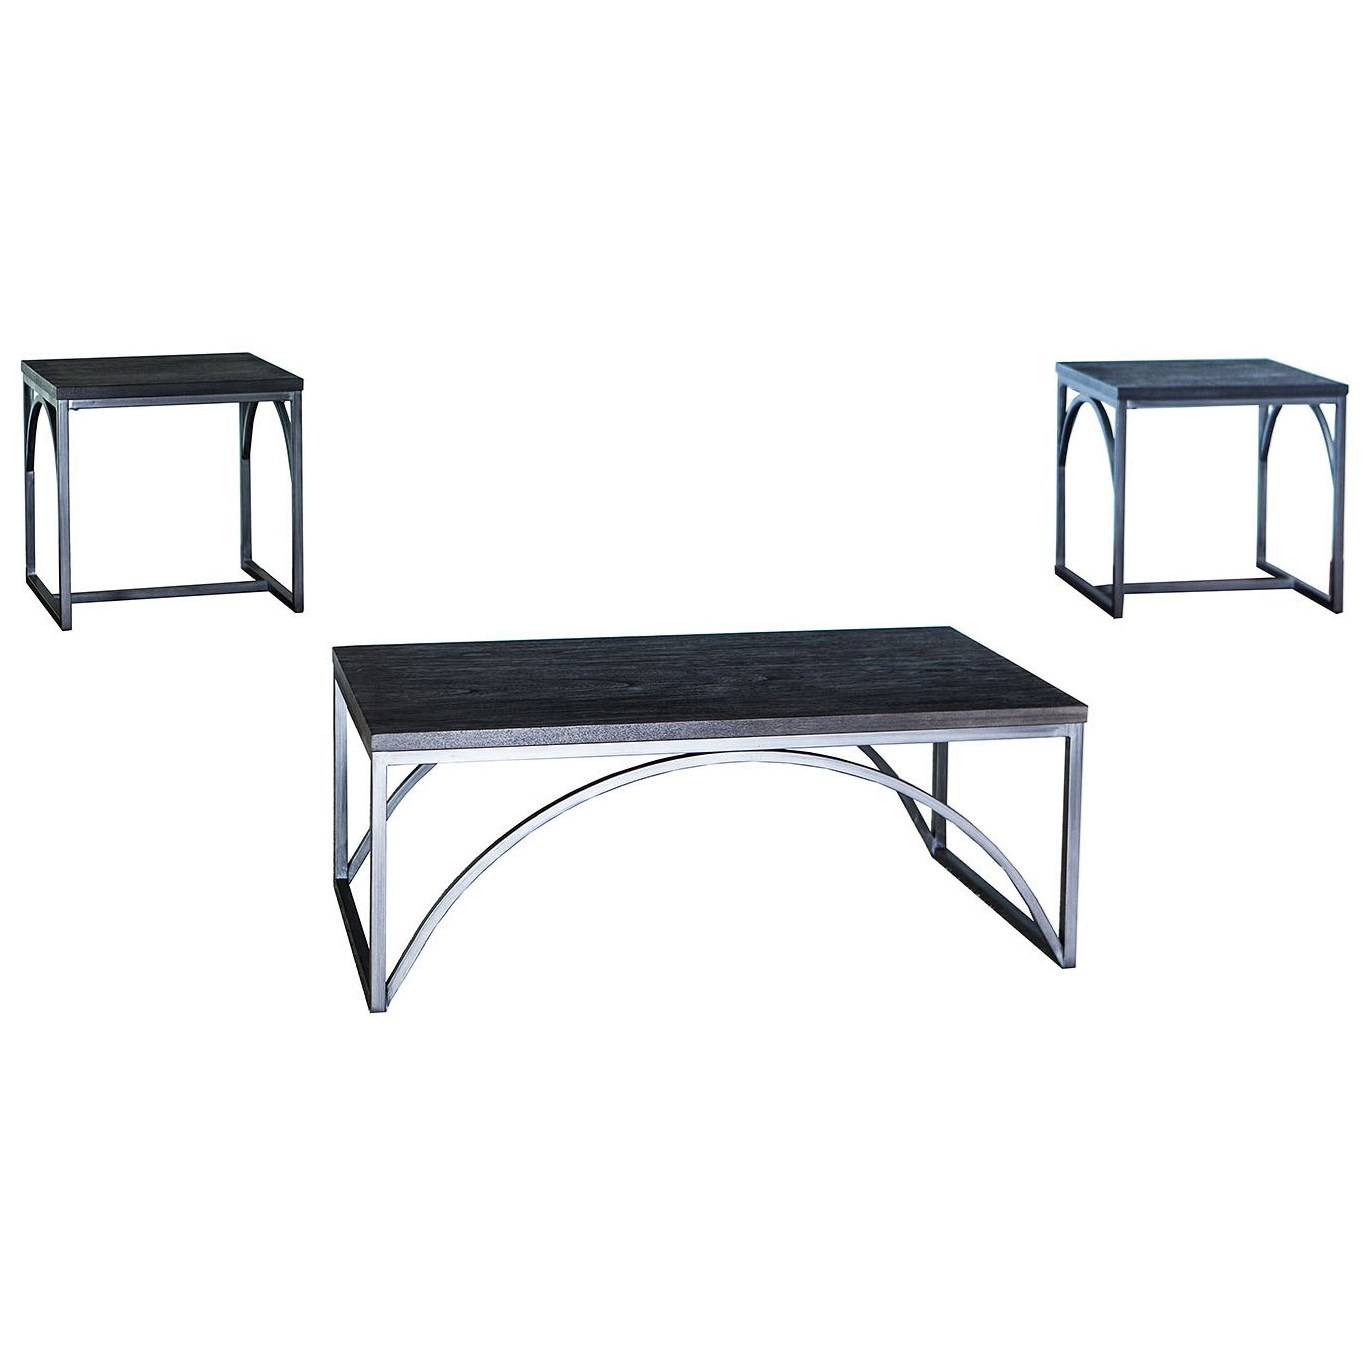 7332 3 Pack Occasional Tables by Lane at Esprit Decor Home Furnishings